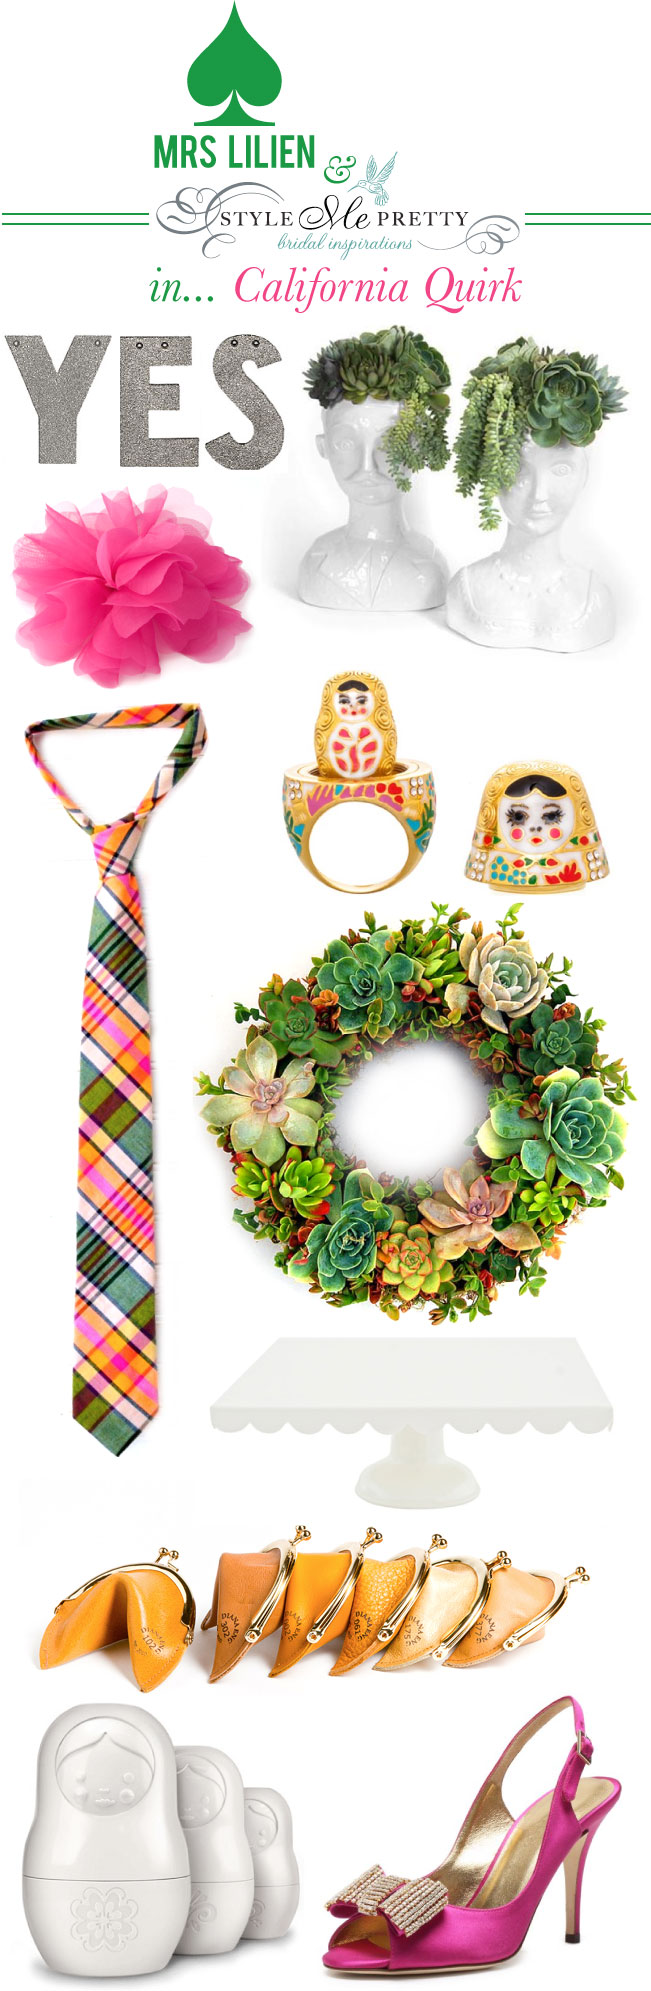 pink shoes, hens and chicks, succulents, wreaths, glitter letters, corsage, braidal, bridal decor, madras, russian doll, matryoshka, head vase, measuring cups, centerpiece ideas, kitchen decor, dining roon decor, ties, formal shoes